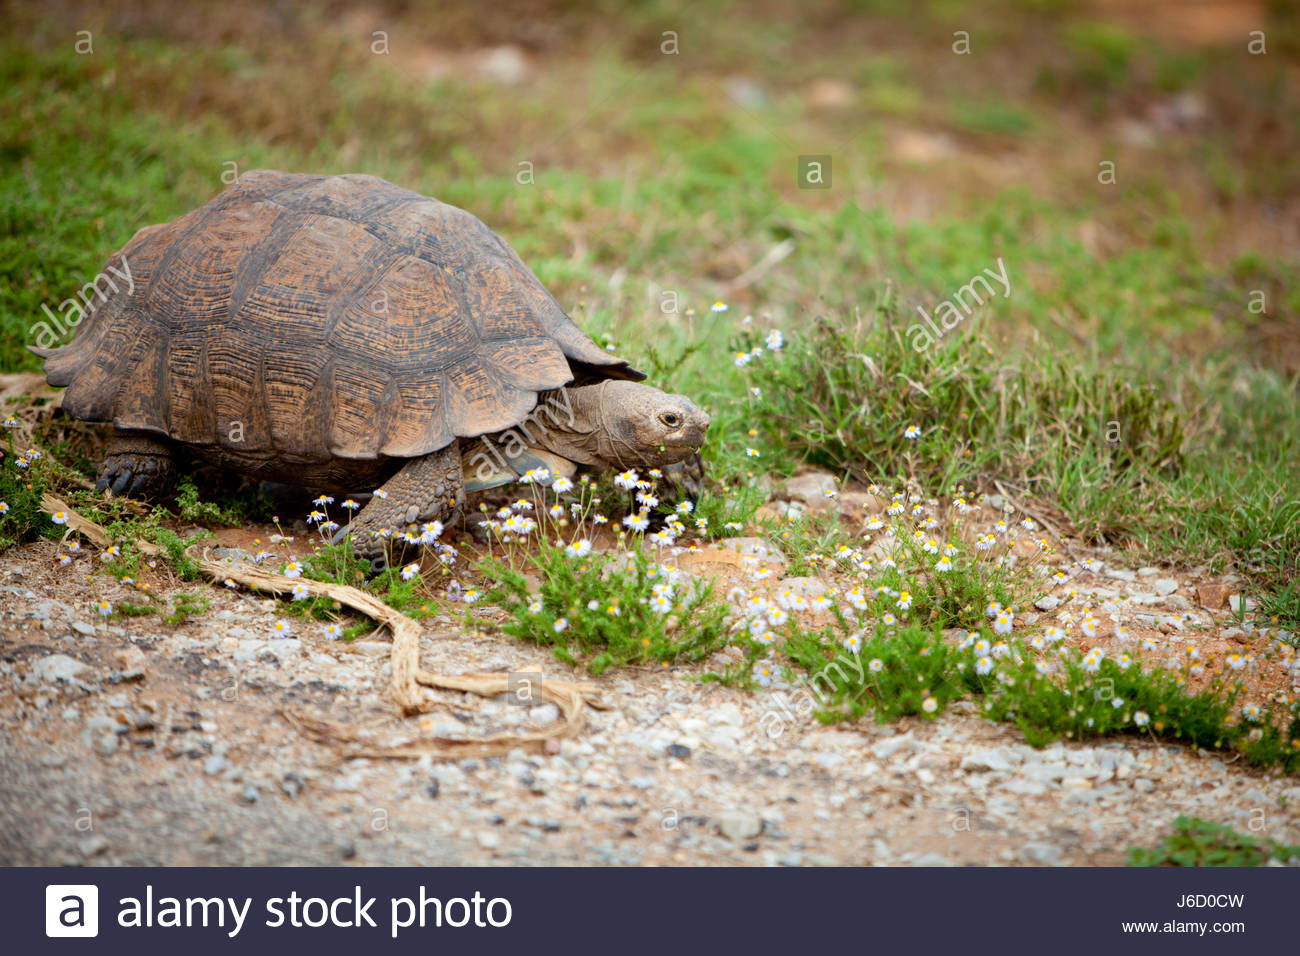 Leopard tortoise (Stigmochelys pardalis) a large and attractively marked tortoise found in the savannas of eastern - Stock Image